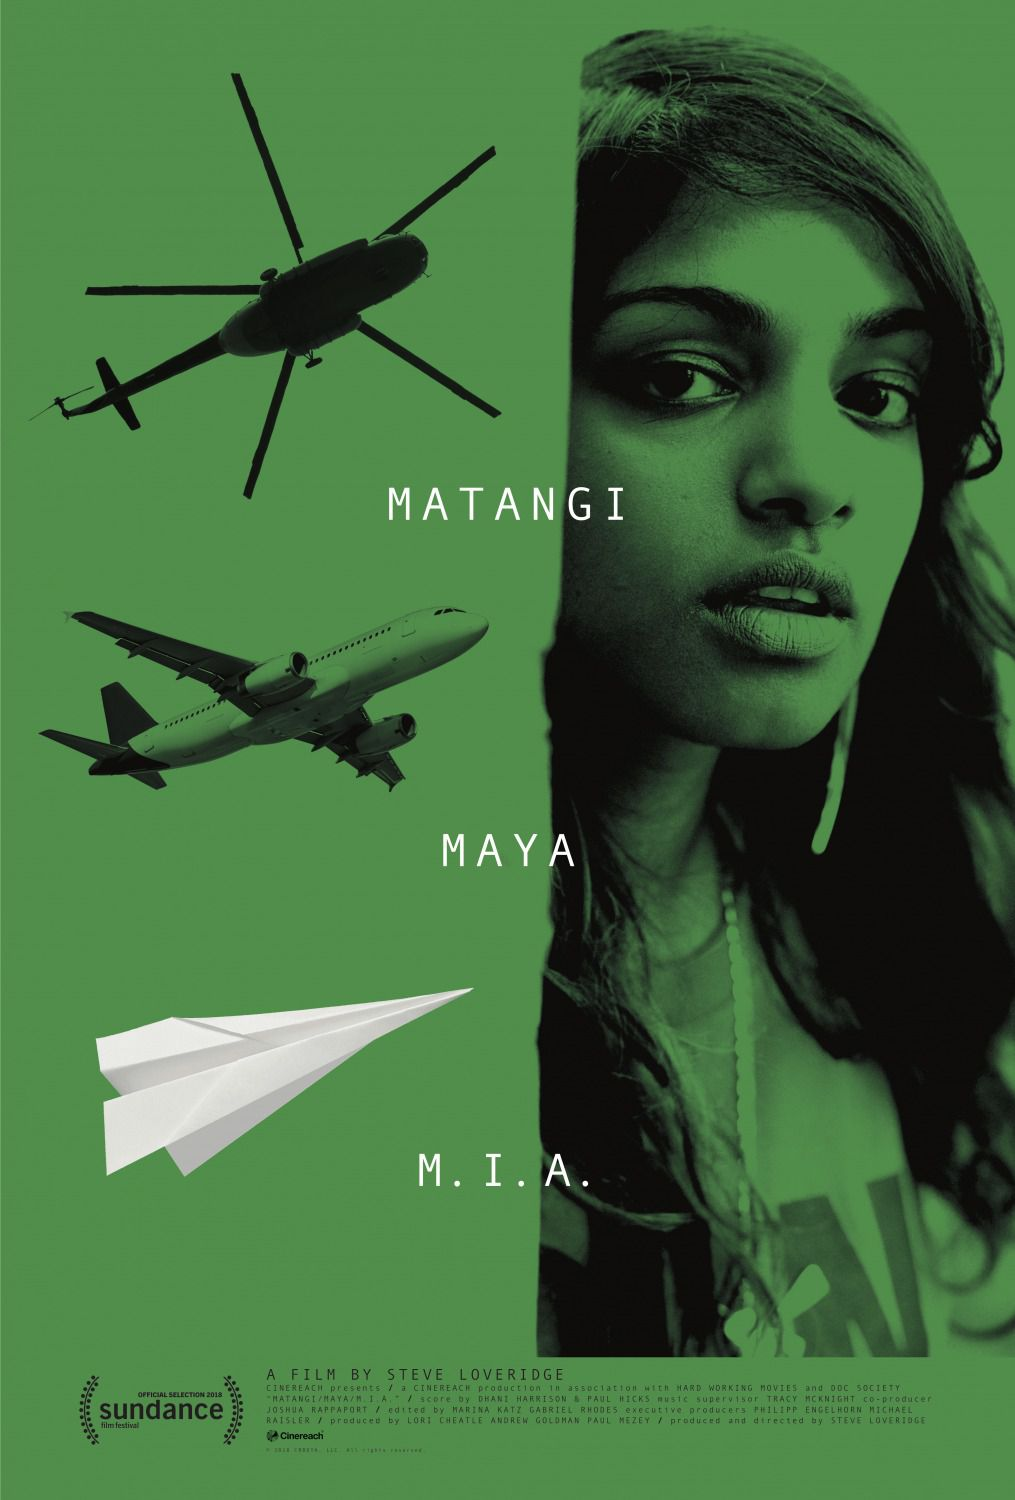 Matangi Maya MIA by Steve Loveridge - film poster